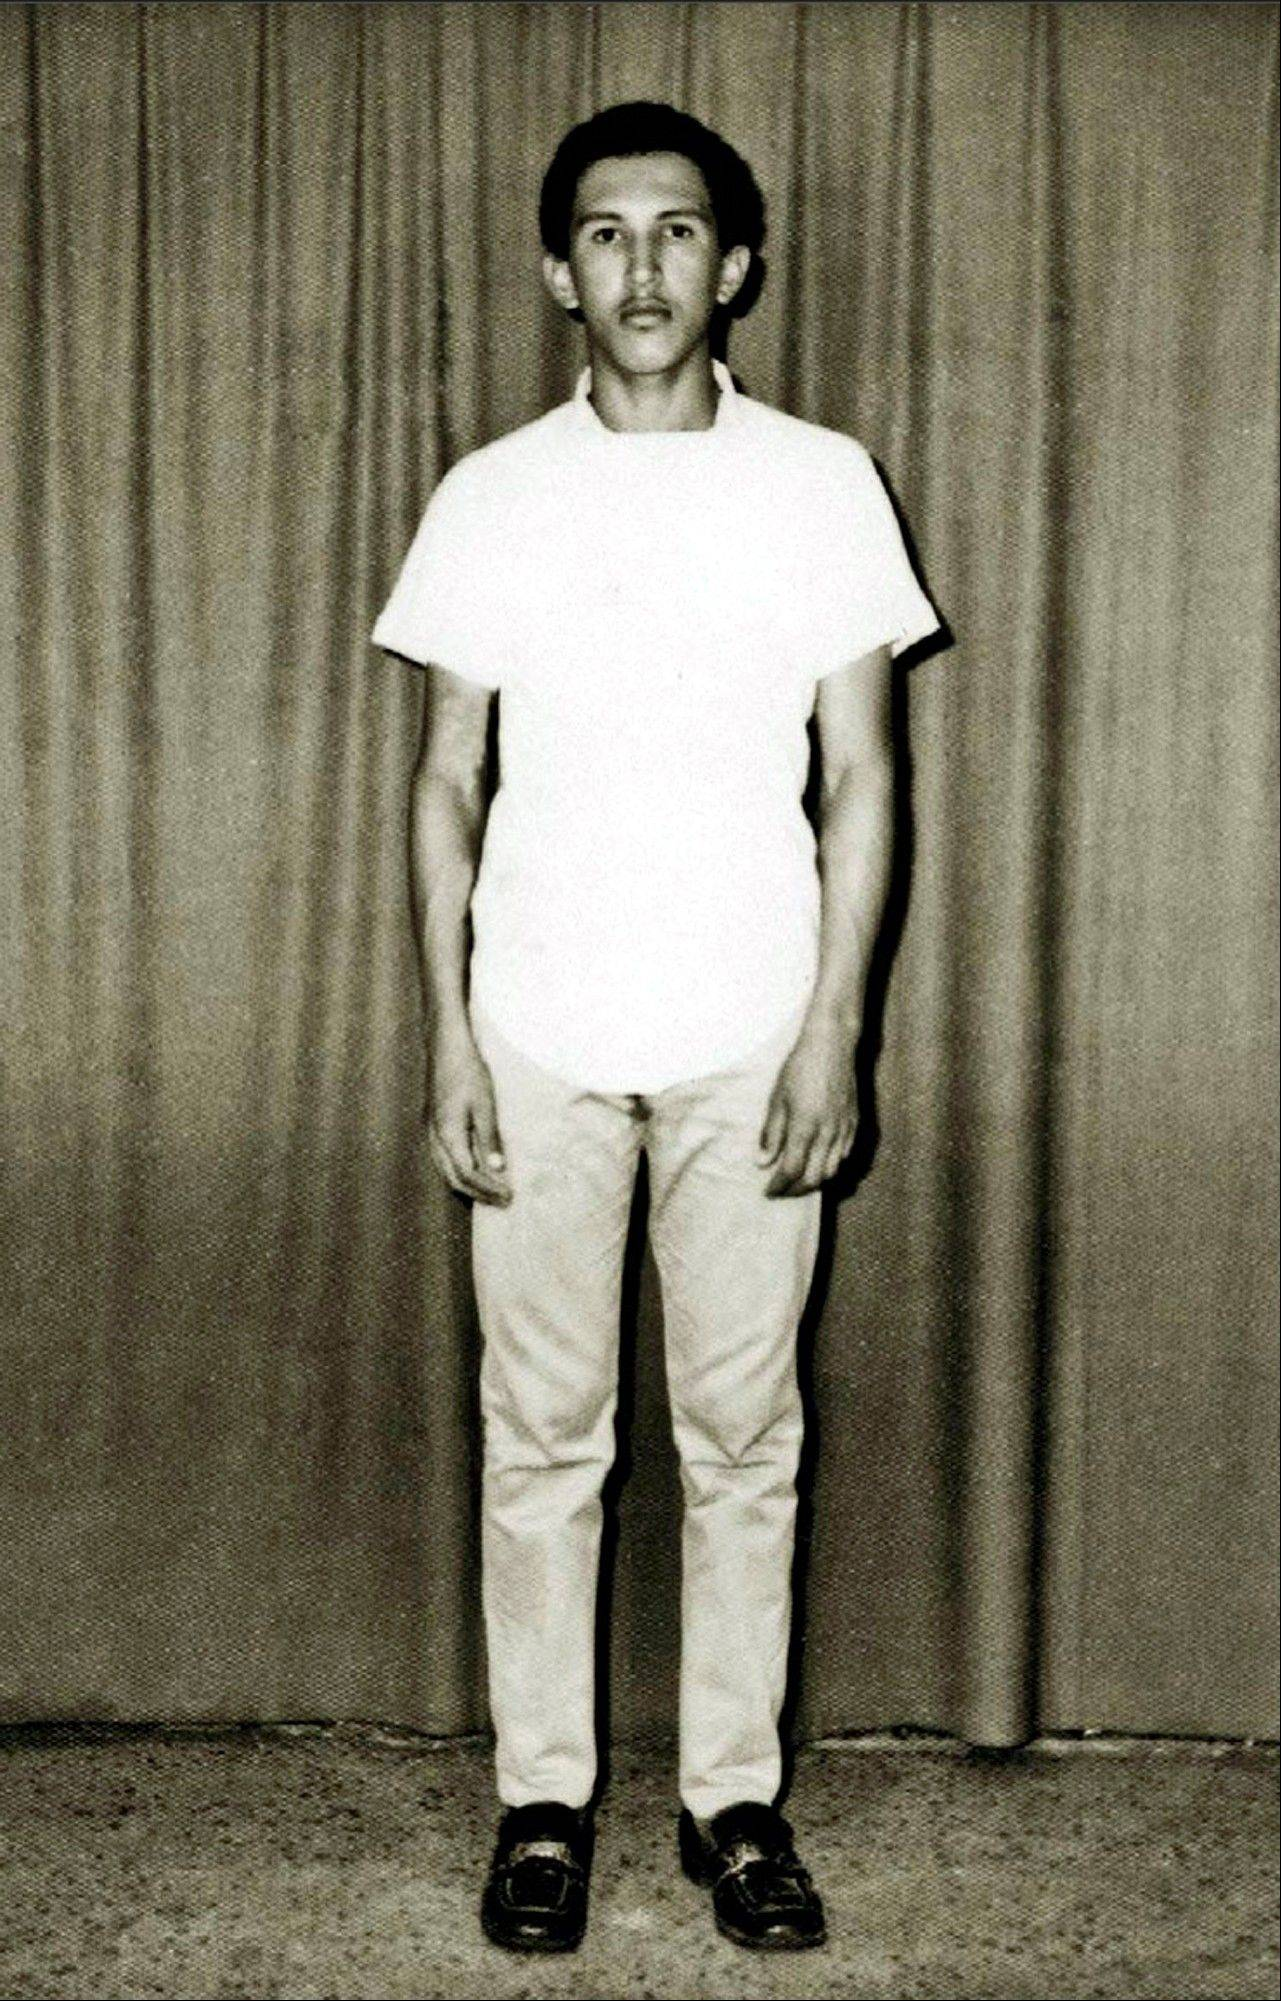 In this March 1971 photo released by Miraflores Press Office, Hugo Chavez poses for a photo prior to his admission to the military academy in Caracas, Venezuela.